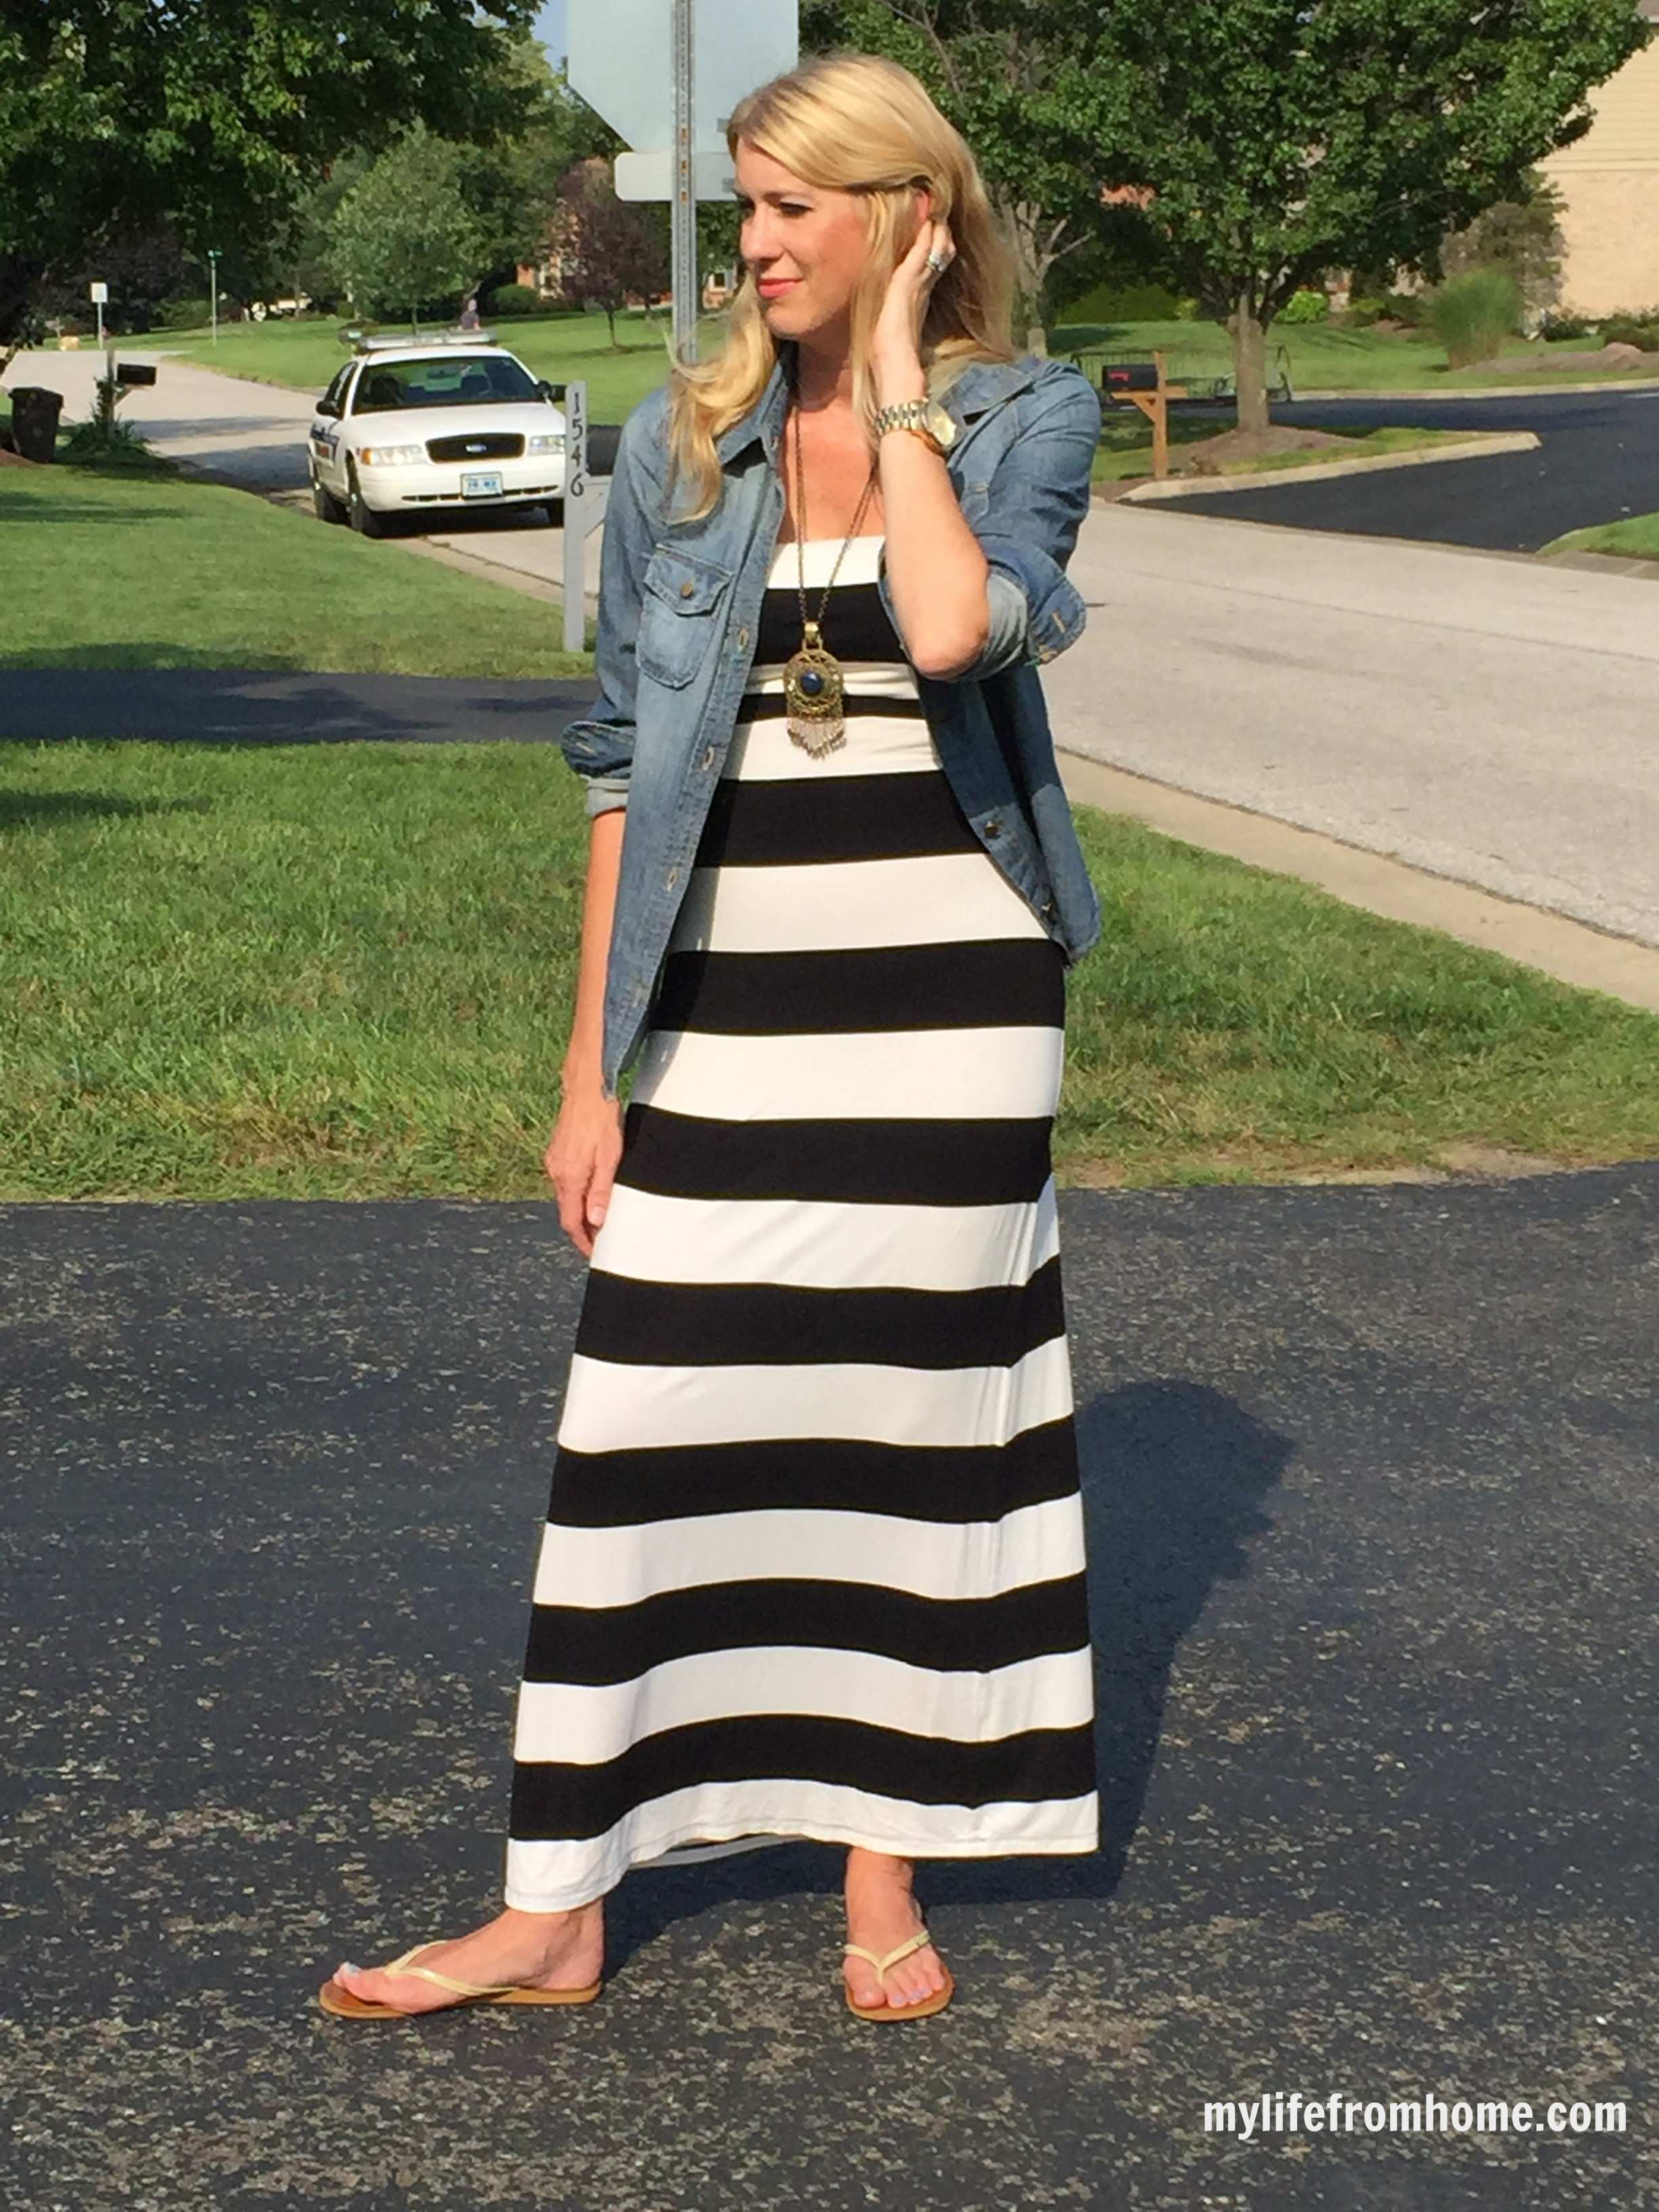 Denim Shirt over a Maxi Dress by www.whitecottagehomeandliving.com